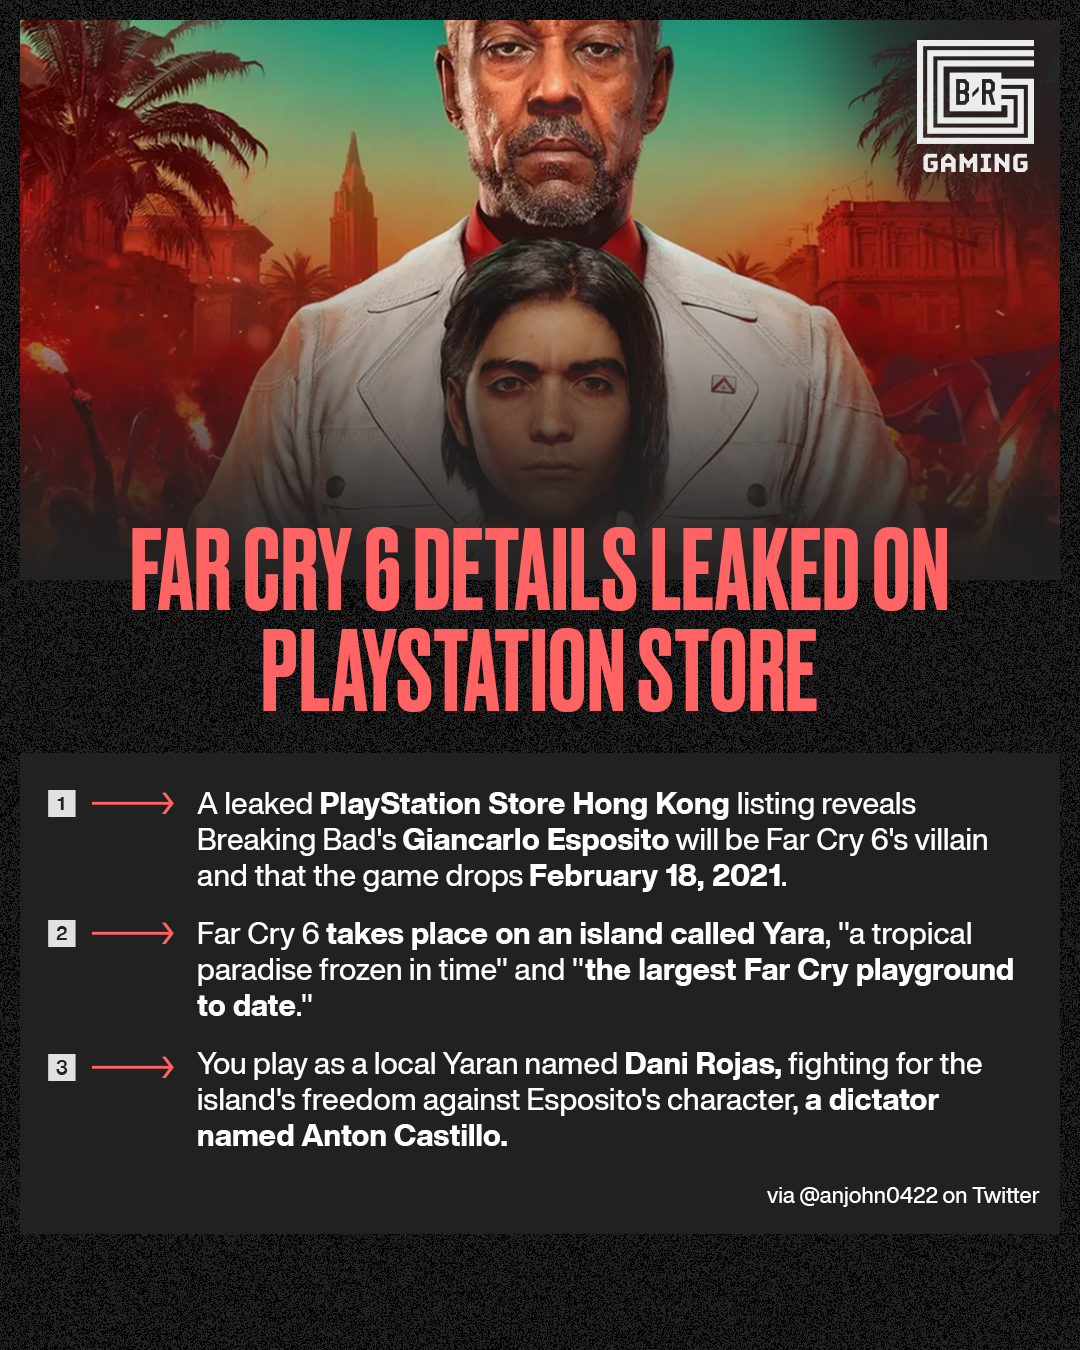 Uzivatel B R Gaming Na Twitteru The First Far Cry 6 Details Have Leaked